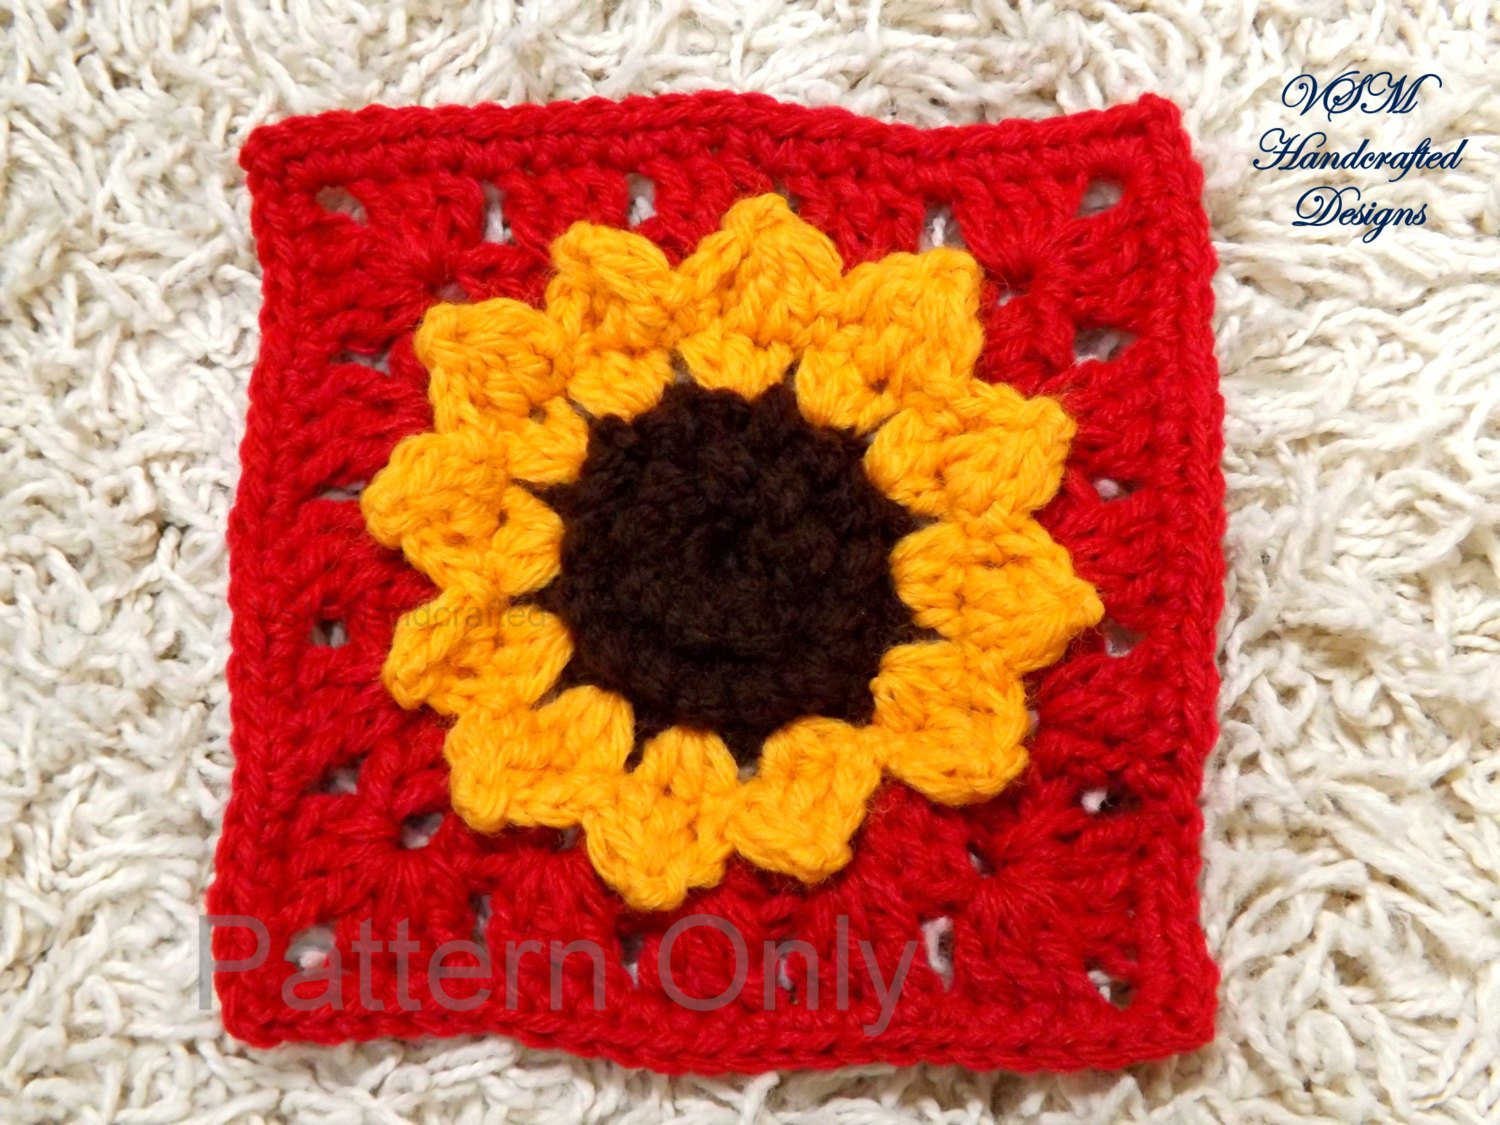 Awesome Sunflower Granny Square Crochet Pattern W 3d Texture Details Crochet Sunflower Granny Square Of Delightful 41 Images Crochet Sunflower Granny Square